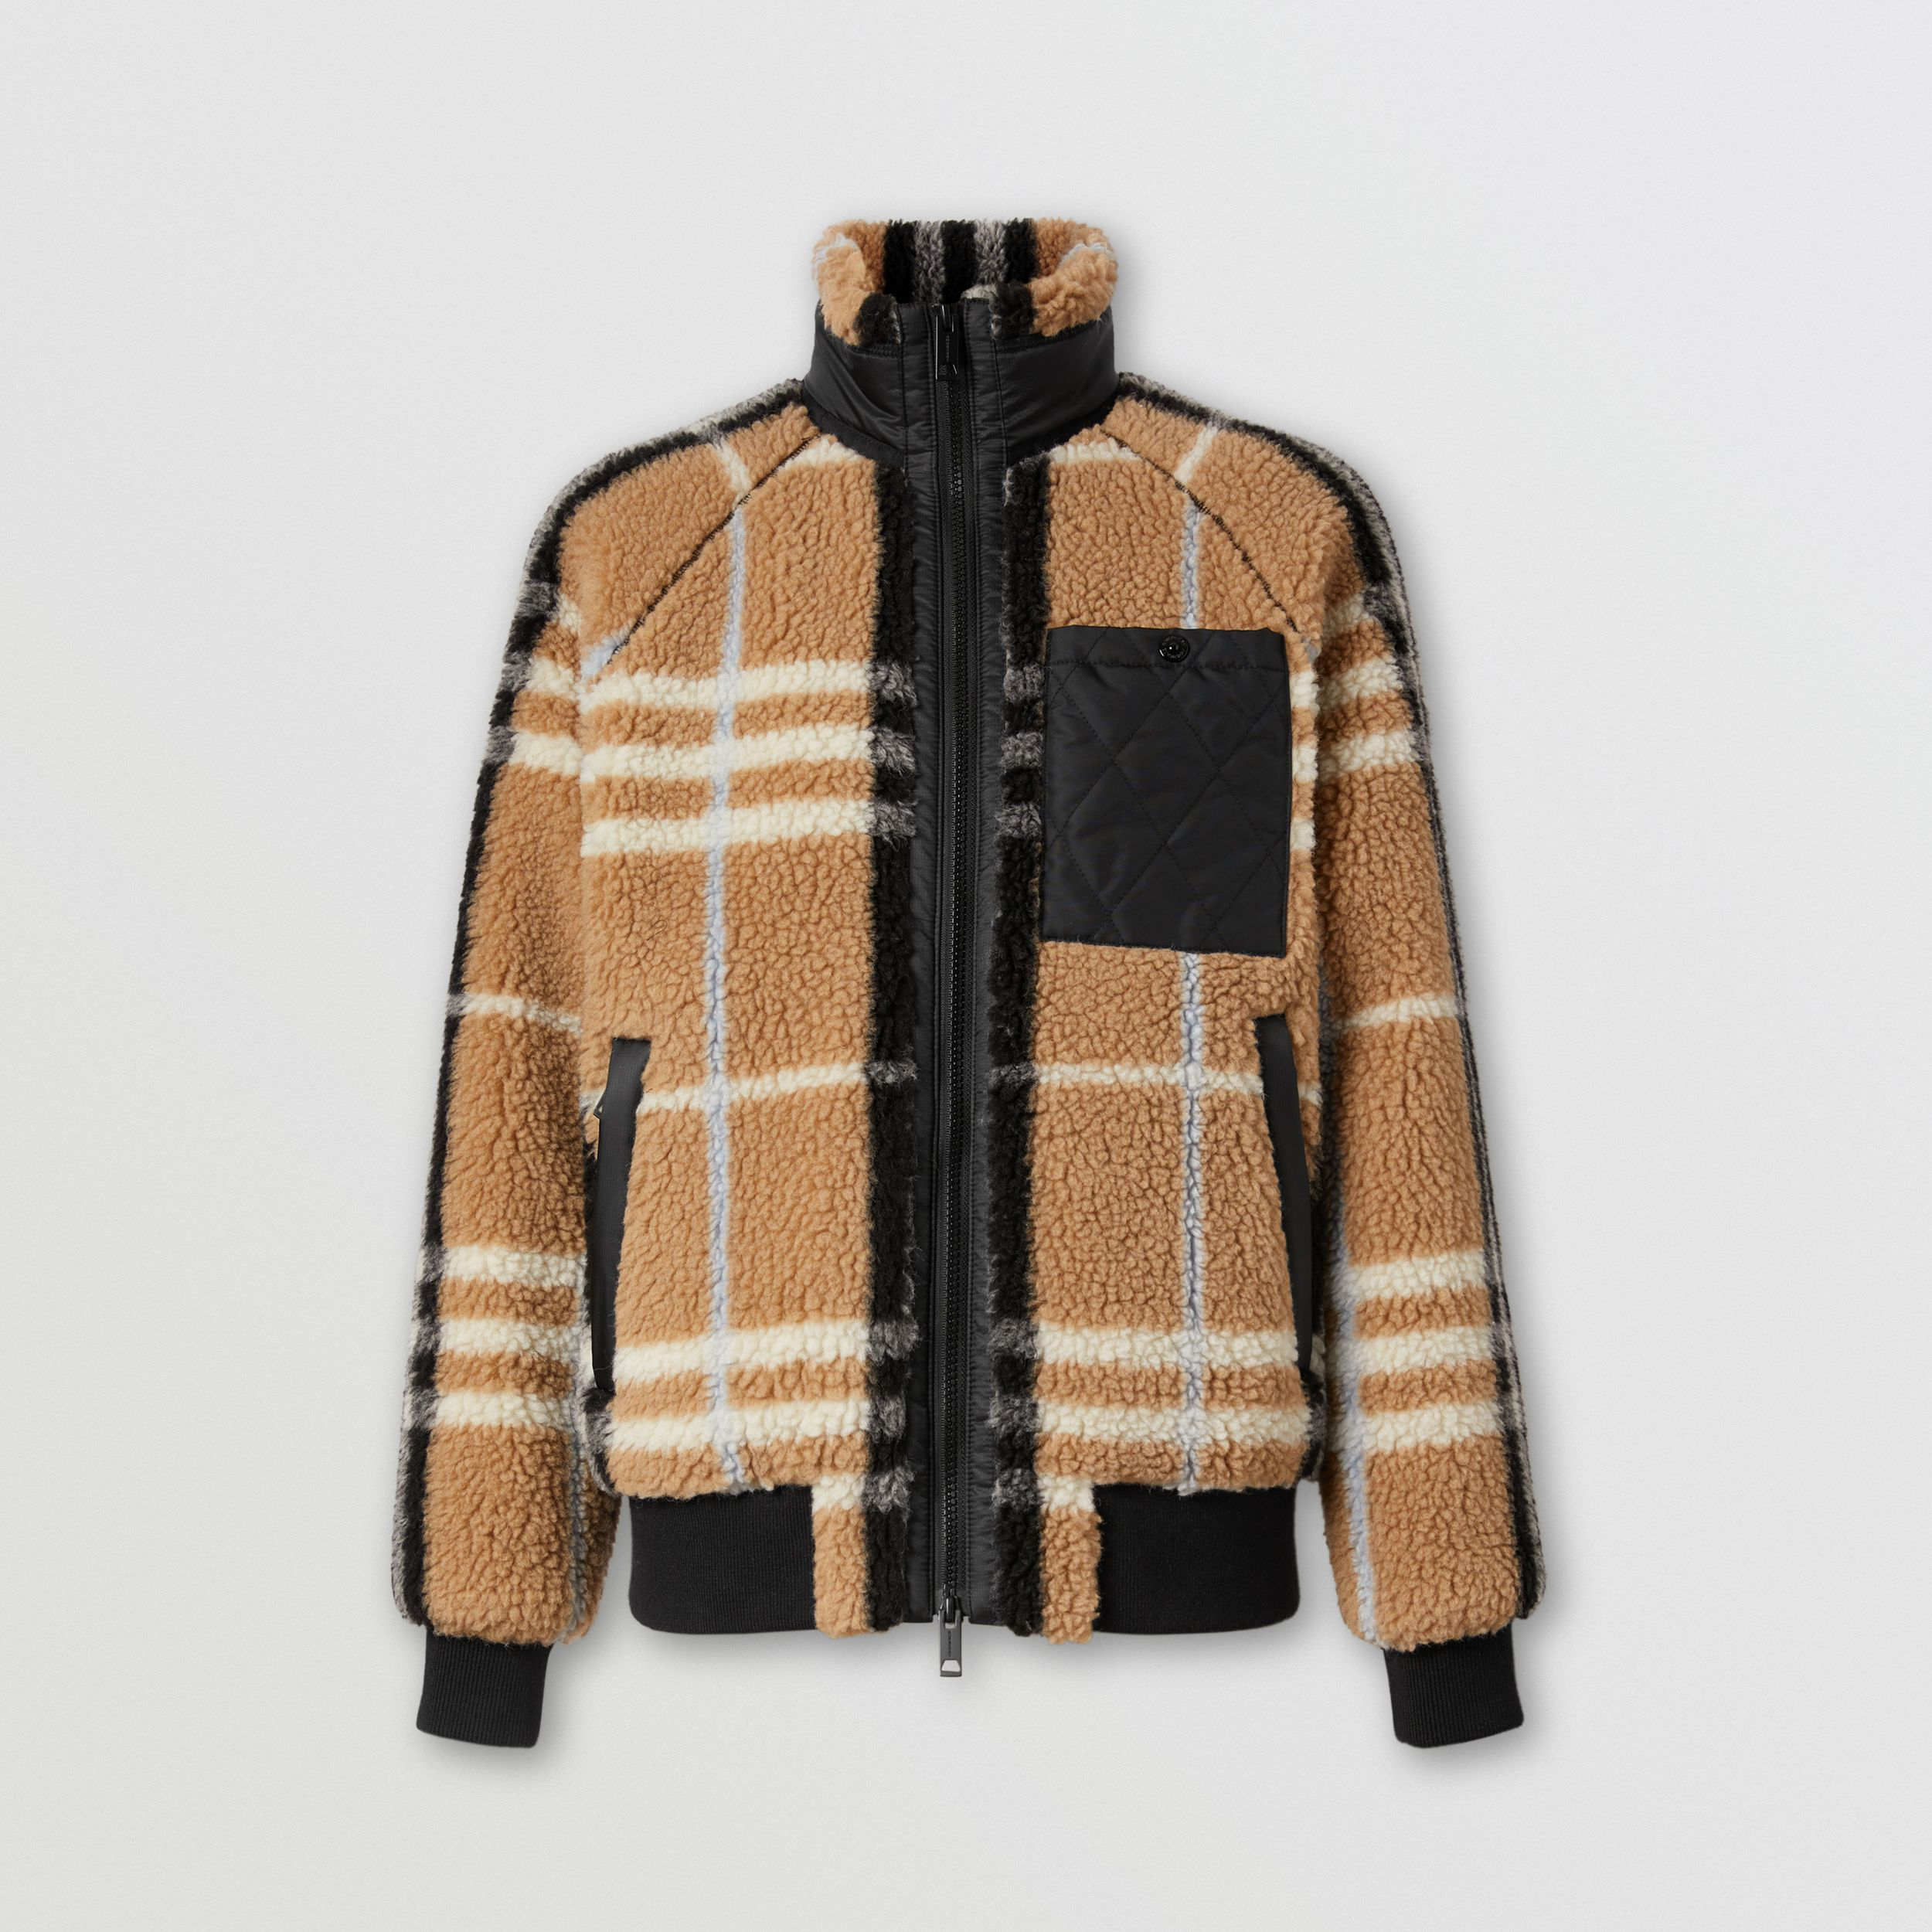 Diamond Quilted Panel Check Fleece Jacquard Jacket in Pale Blue - Women | Burberry United States - 4